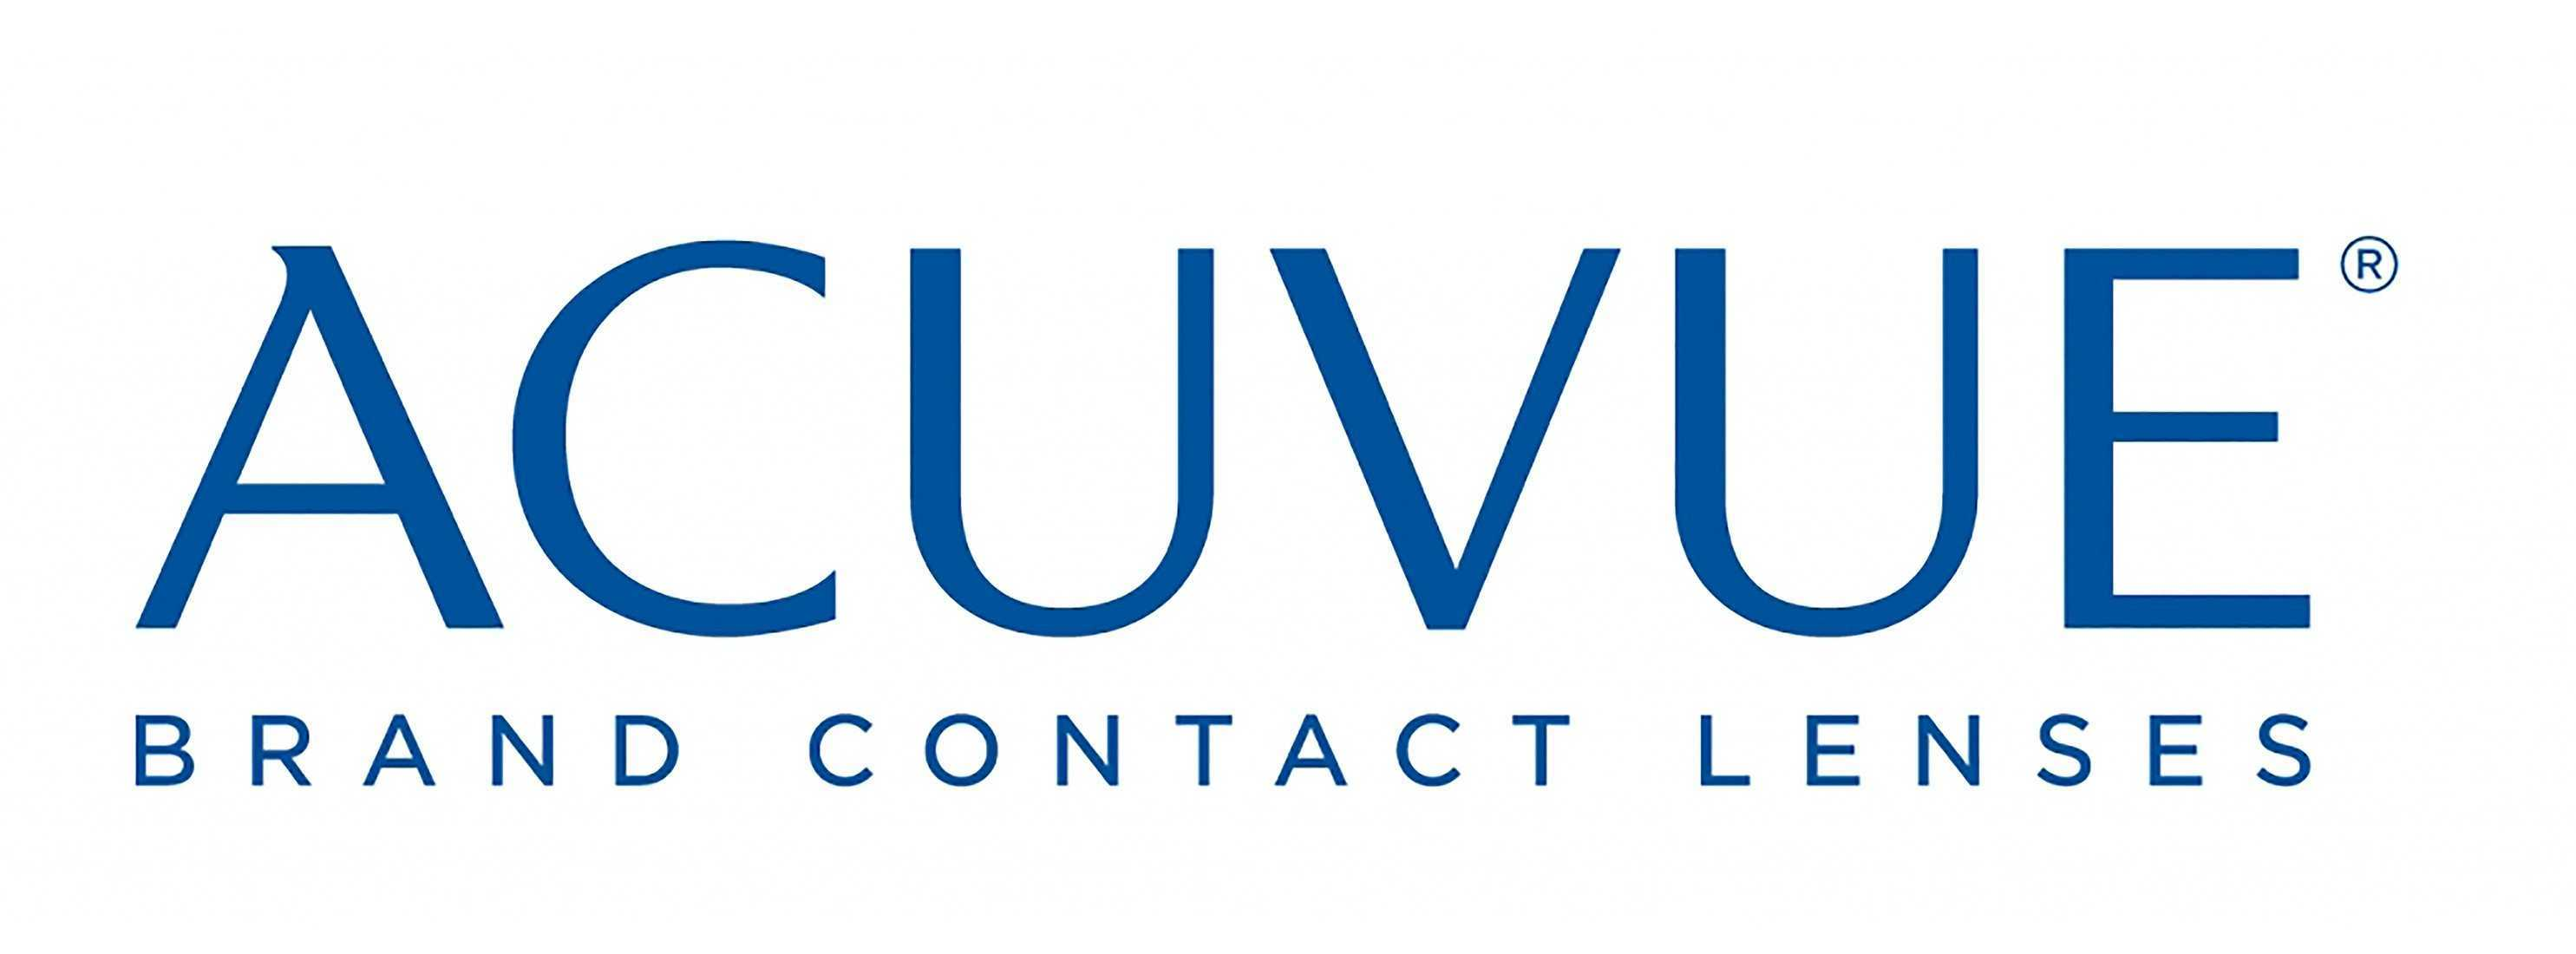 Contact Lenses: ACUVUE